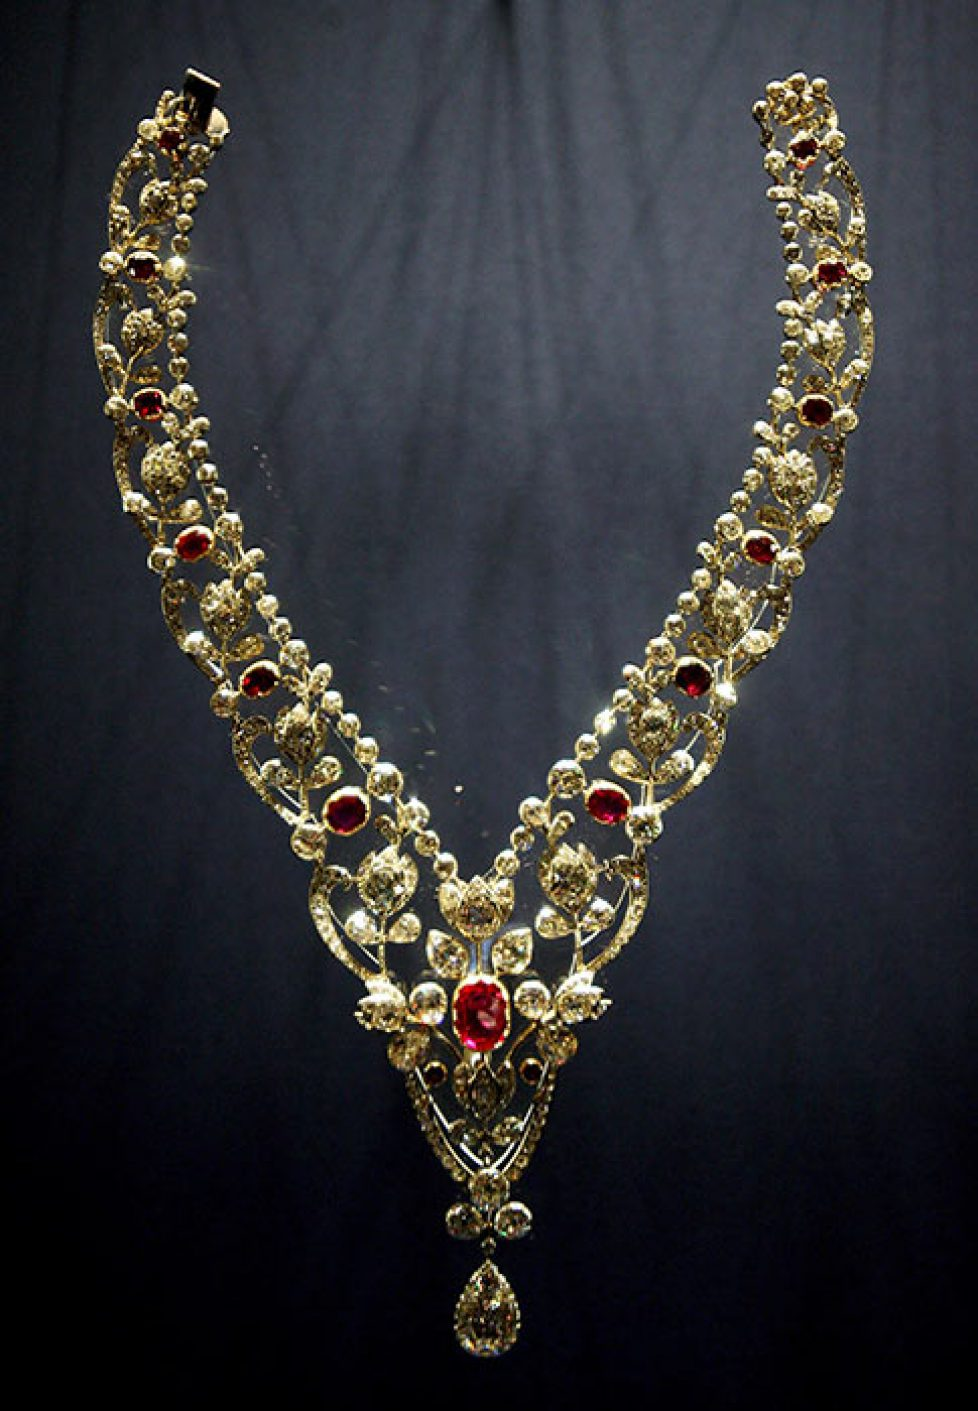 queen-kate-ruby-necklace-a